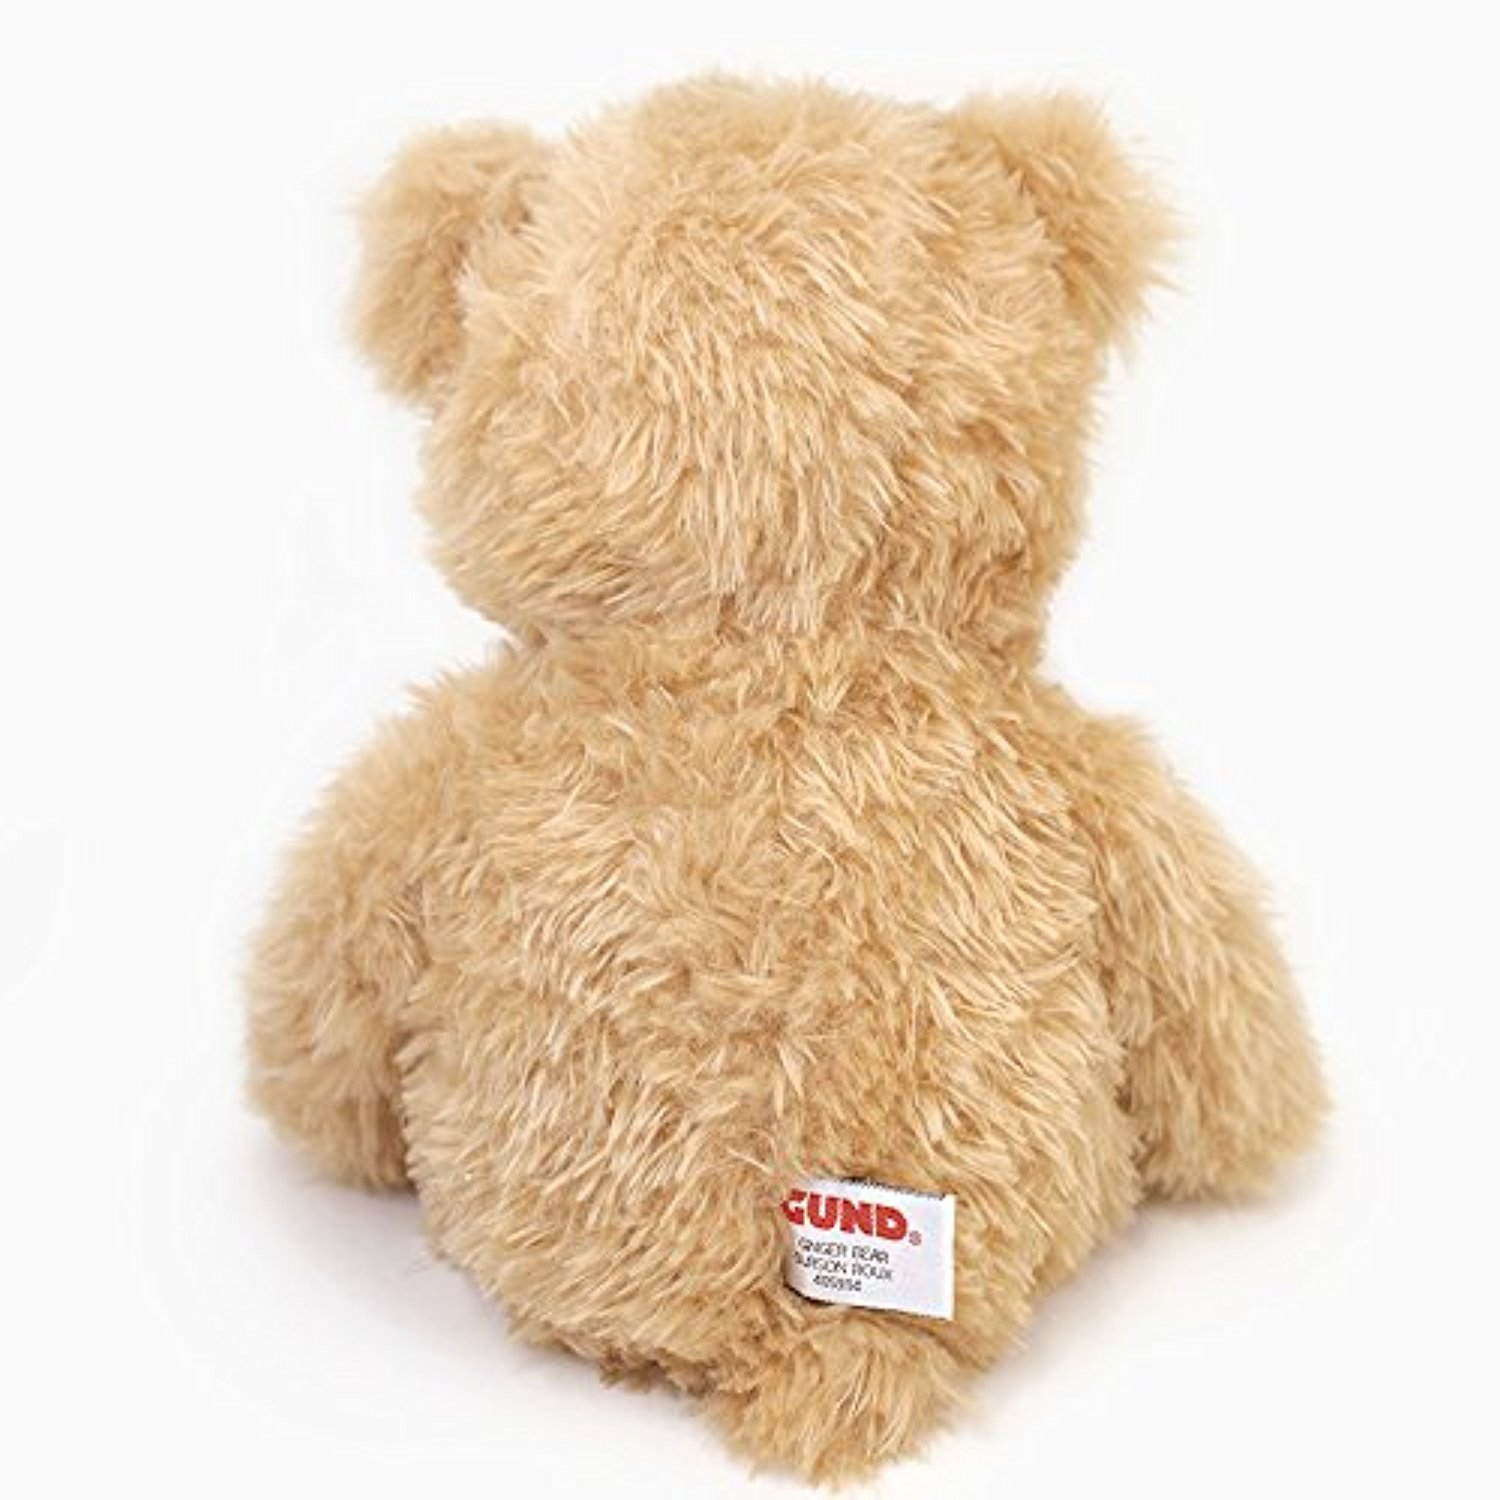 ◎送料込み◎ テディーベア Gund Ginger Bear Stuffed Teddy